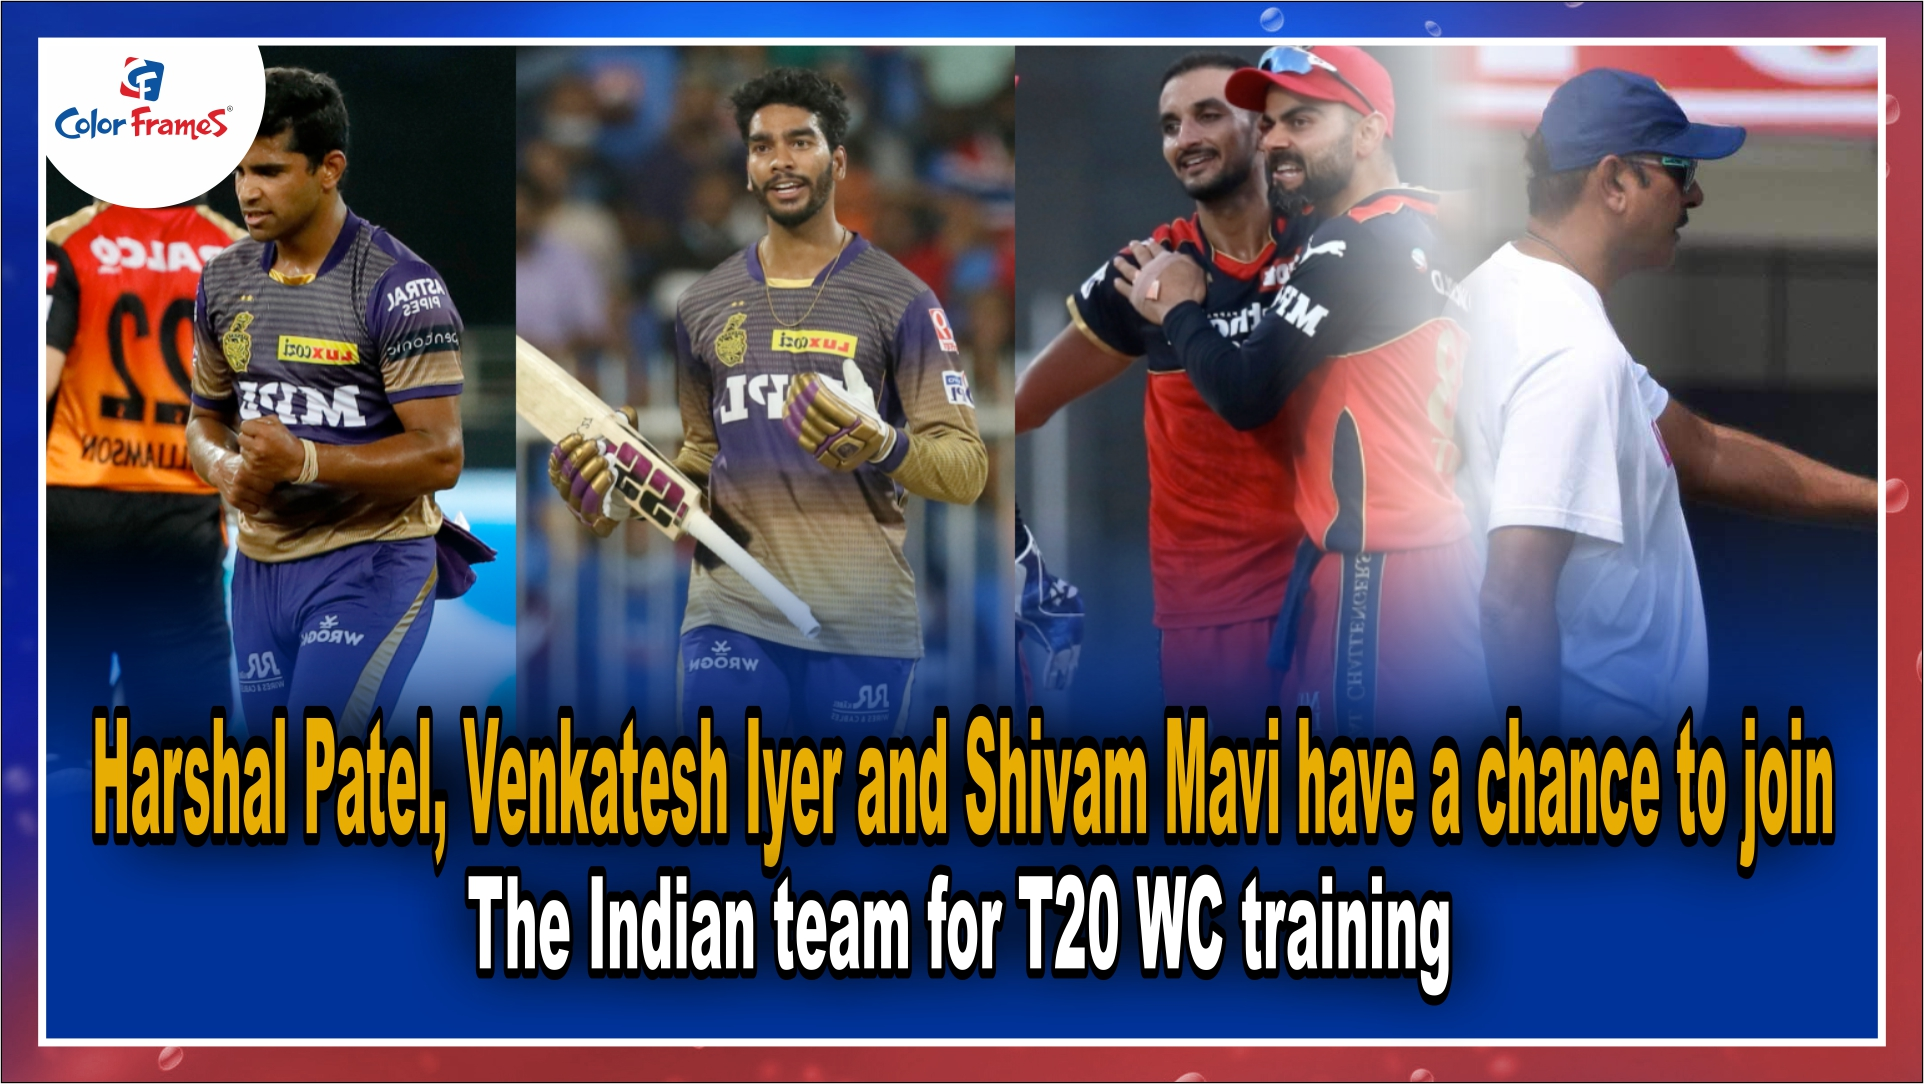 Harshal Patel, Venkatesh Iyer and Shivam Mavi have a chance to join the Indian team for T20 WC training